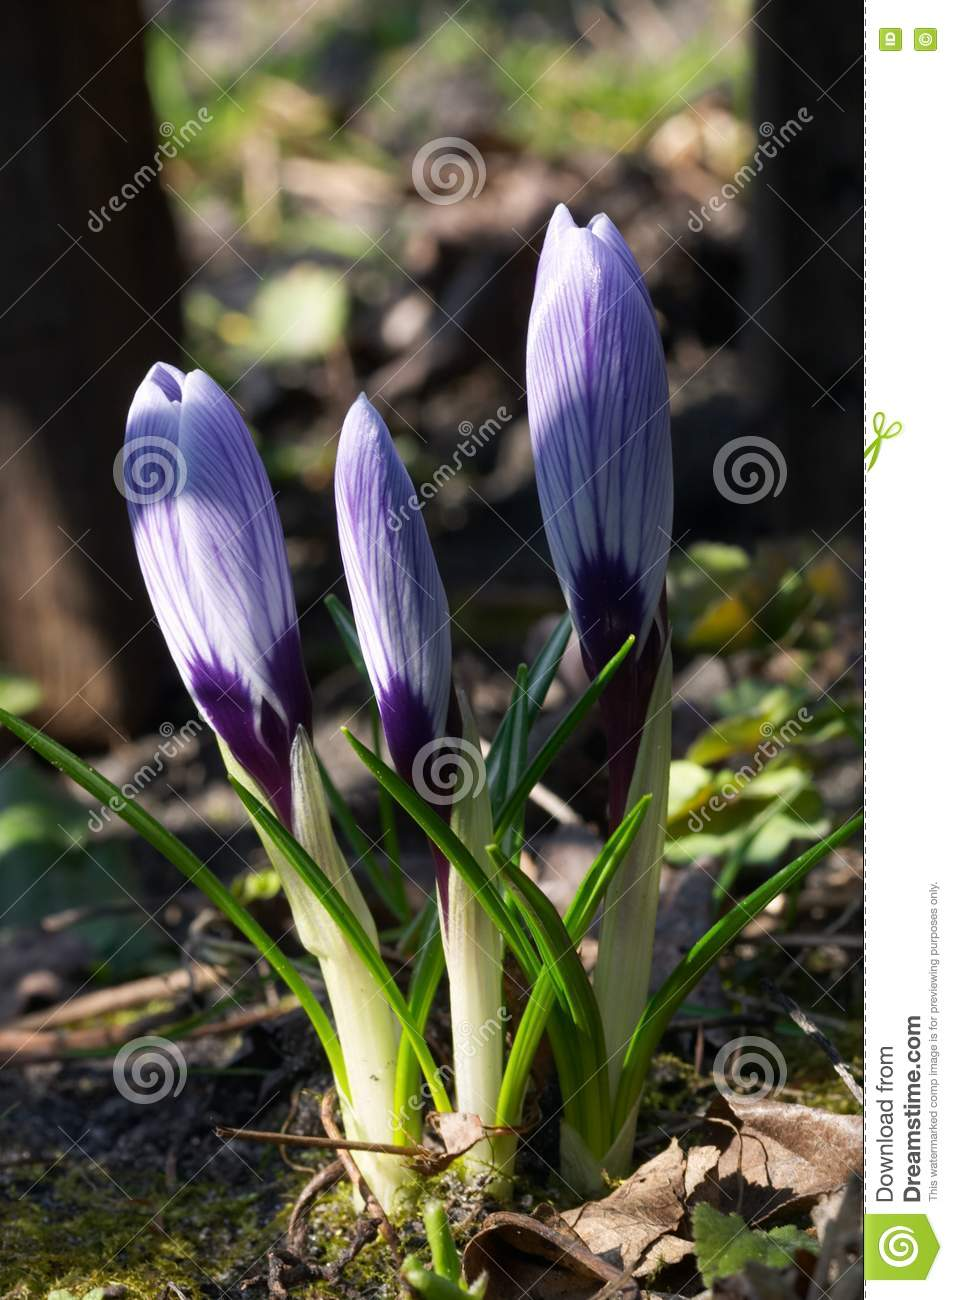 Three crocuses